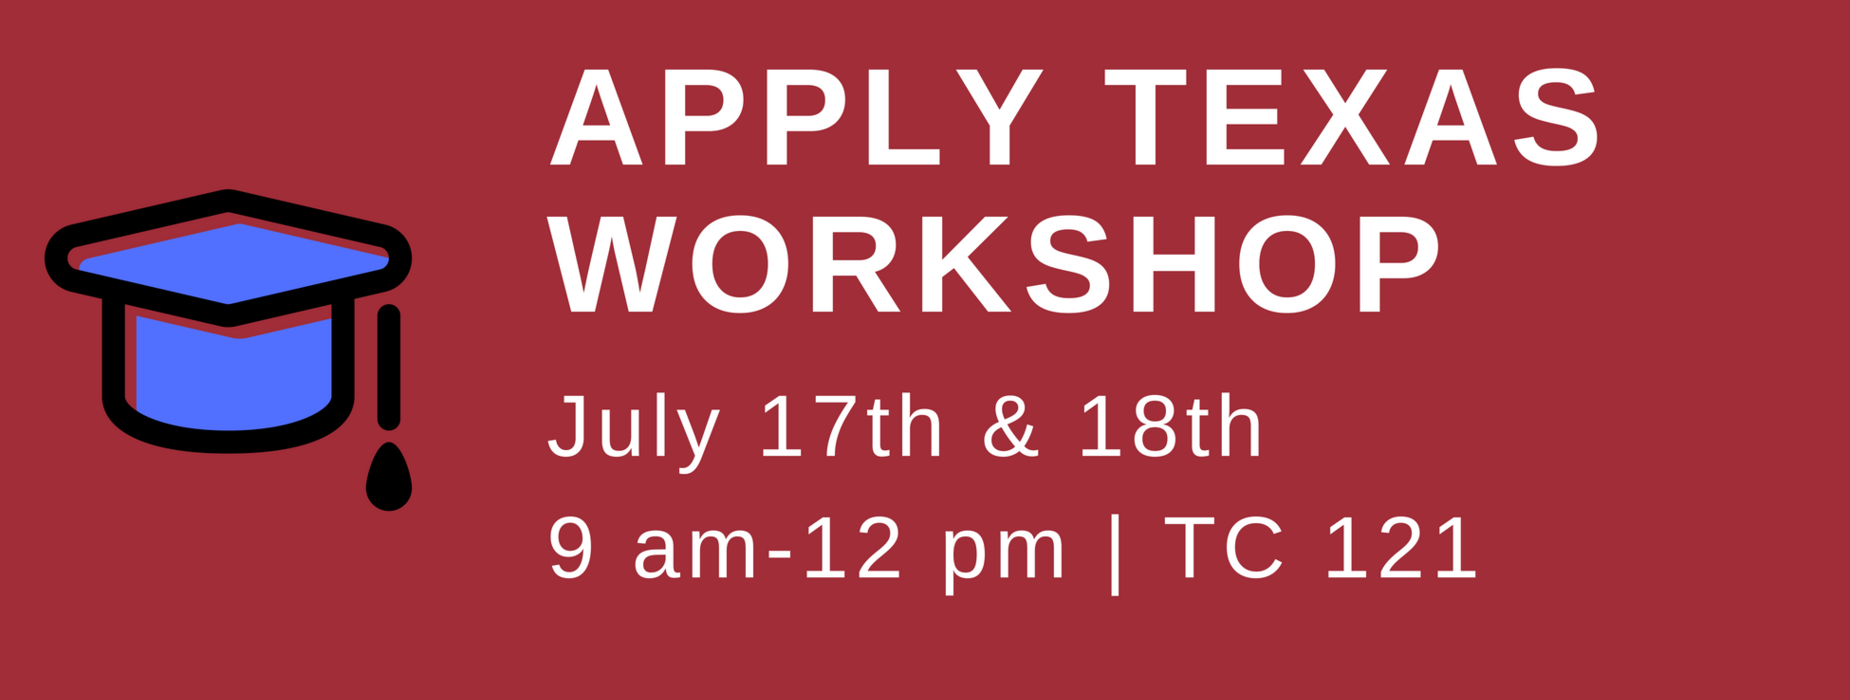 Apply Texas Workshop for Seniors- July 17 & 18 from 9-12 in TC 121